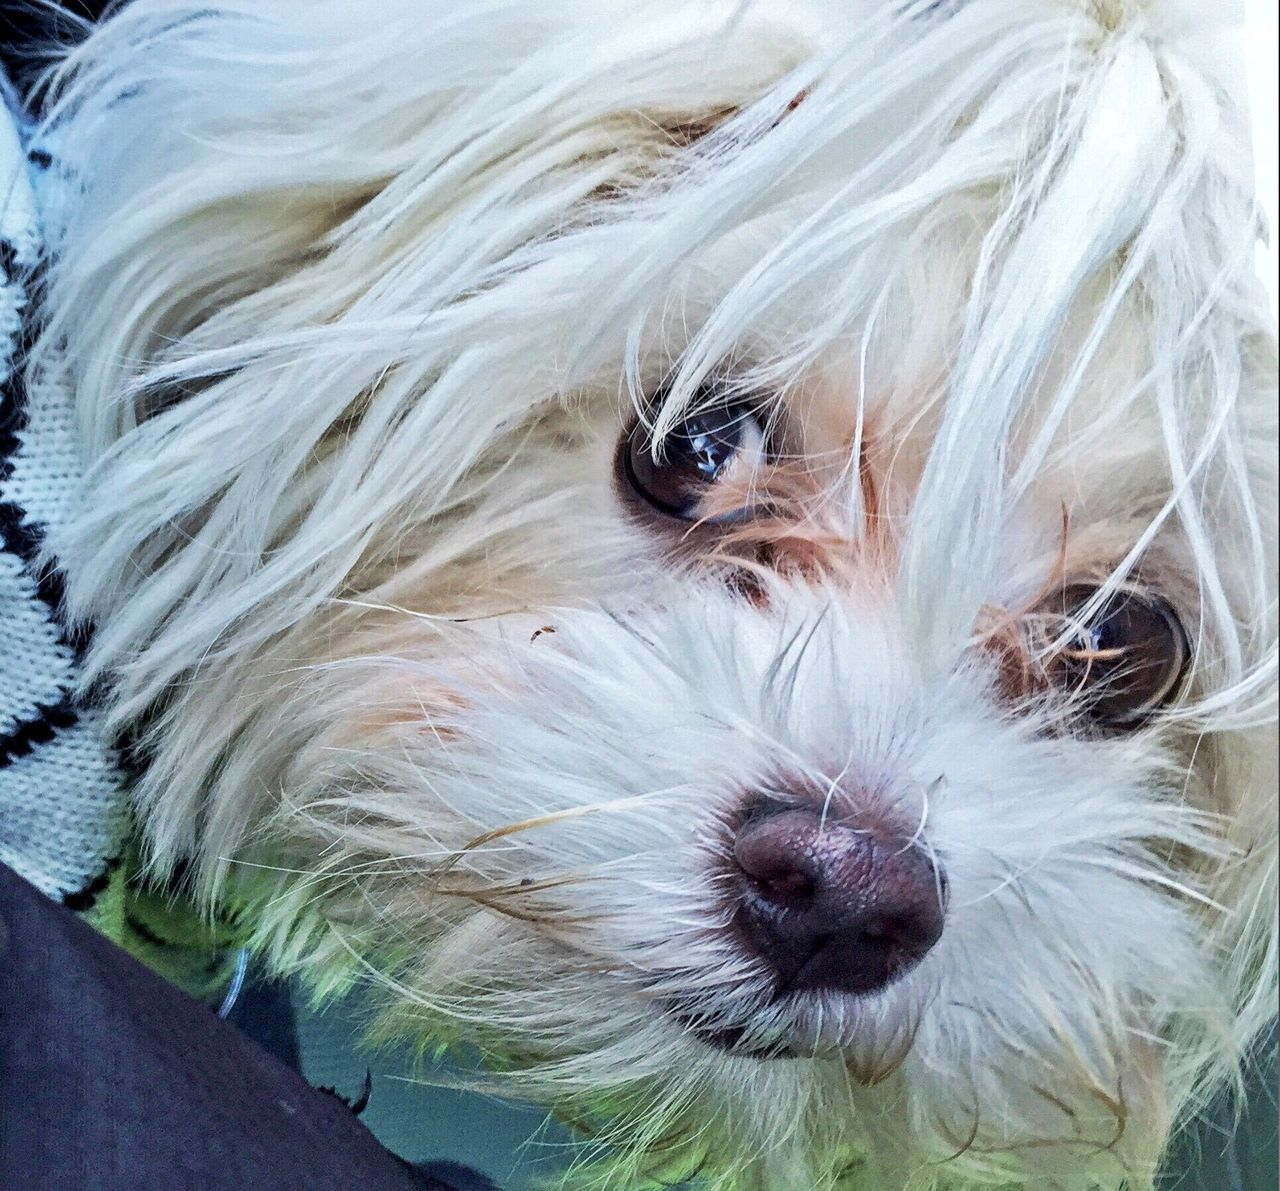 dog, pets, one animal, domestic animals, animal themes, mammal, animal hair, looking at camera, portrait, hairy, close-up, cute, no people, outdoors, day